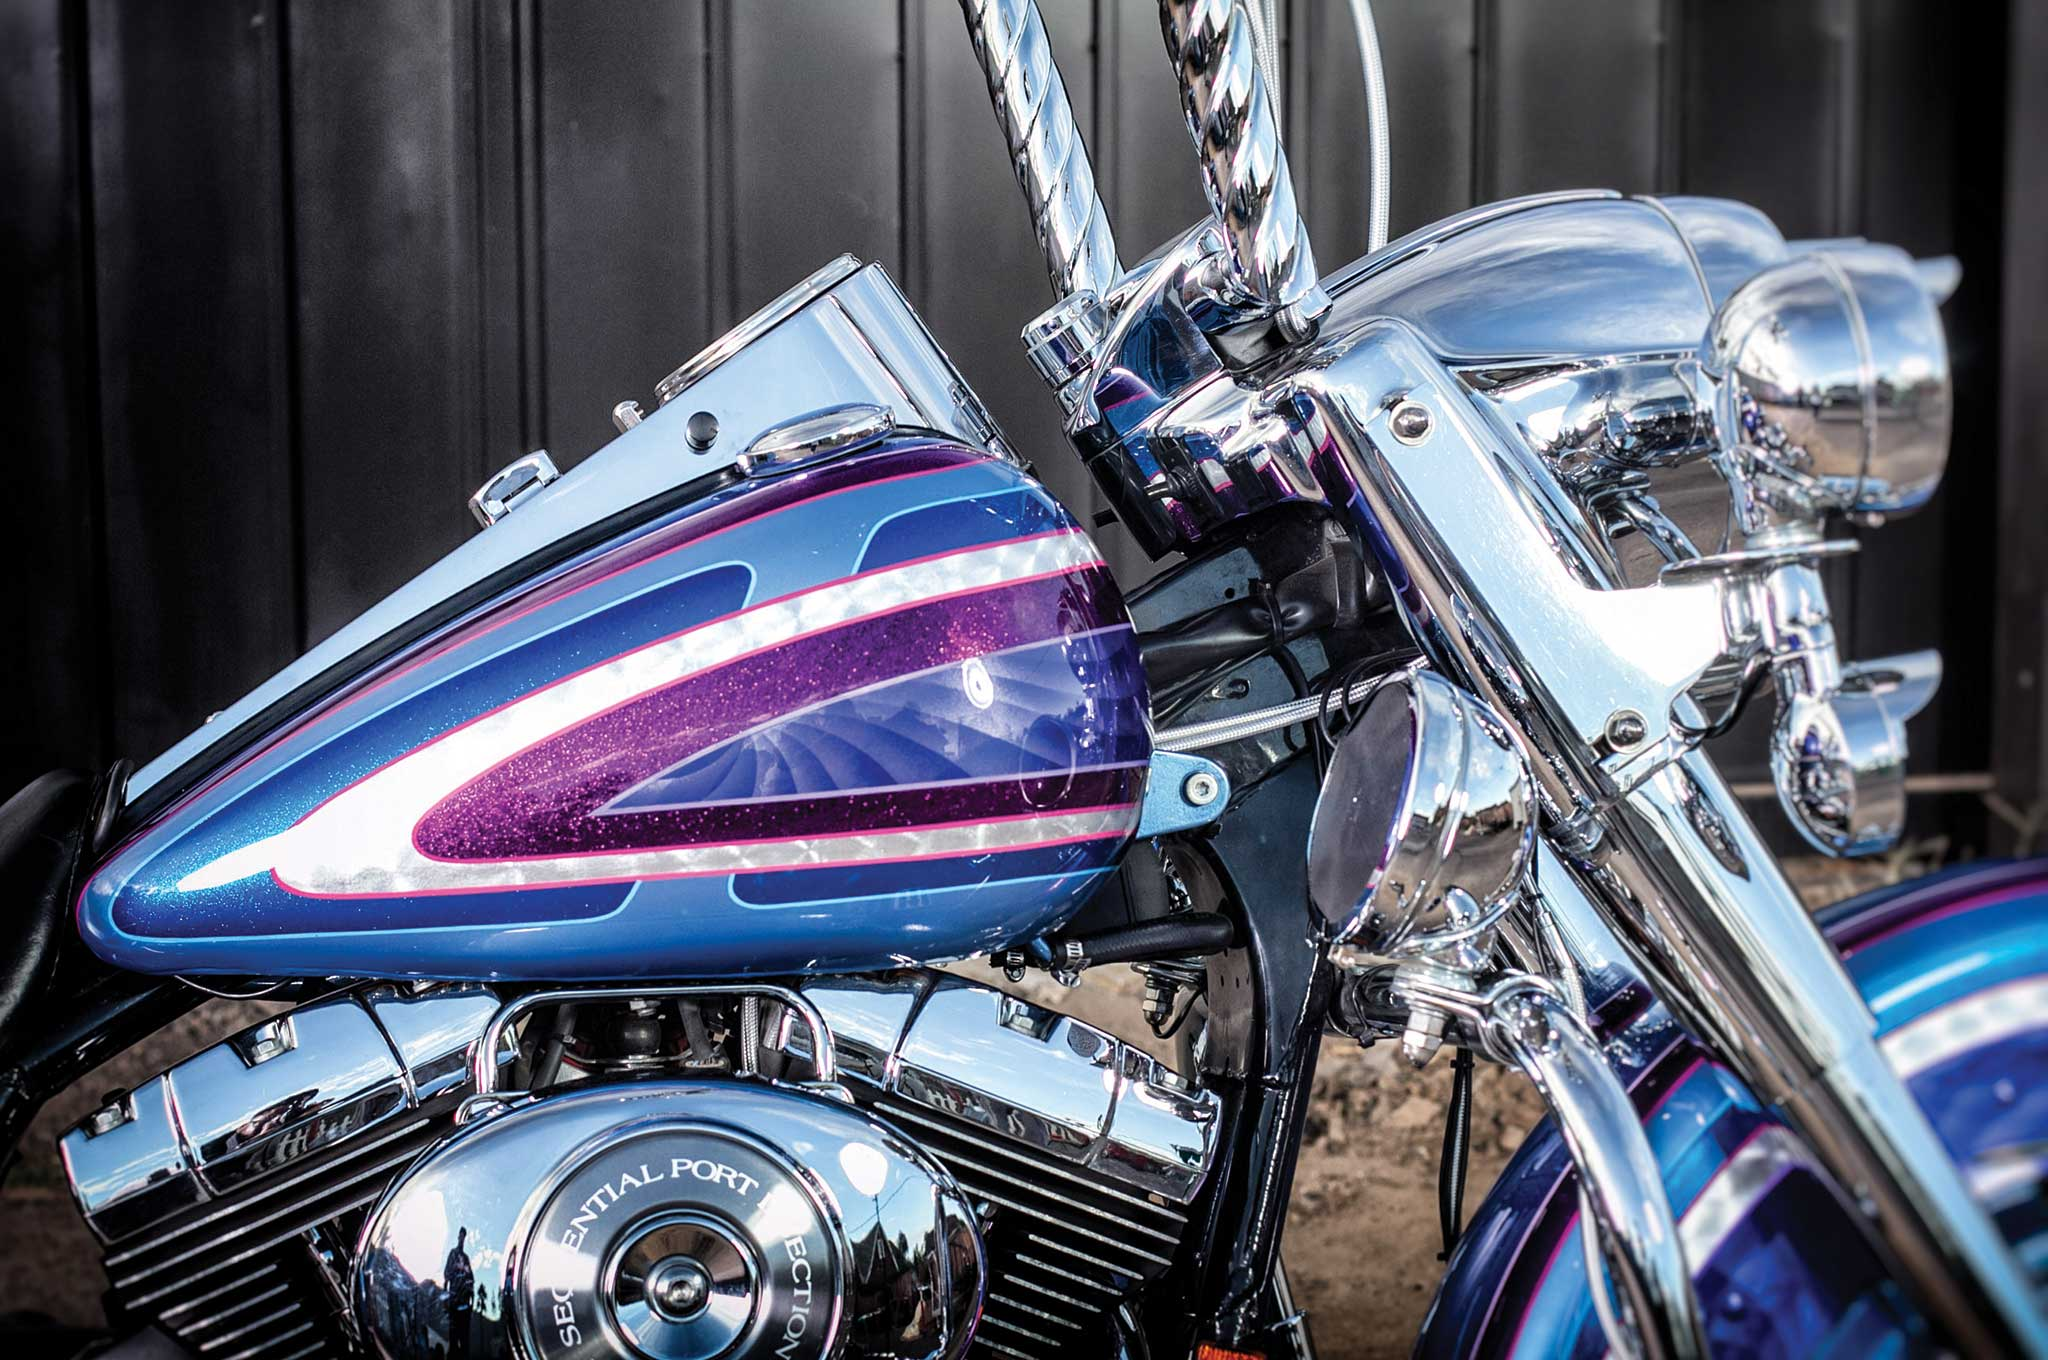 D Rat Rod Colors Finishes Easy To Clean P also Maxresdefault additionally Harley Davidson Road King Fuel Tank likewise Afavbag Finalsmall also Harley Davidson Sportster Seventy Two The New S Chopper Photo Gallery. on harley davidson paint colors